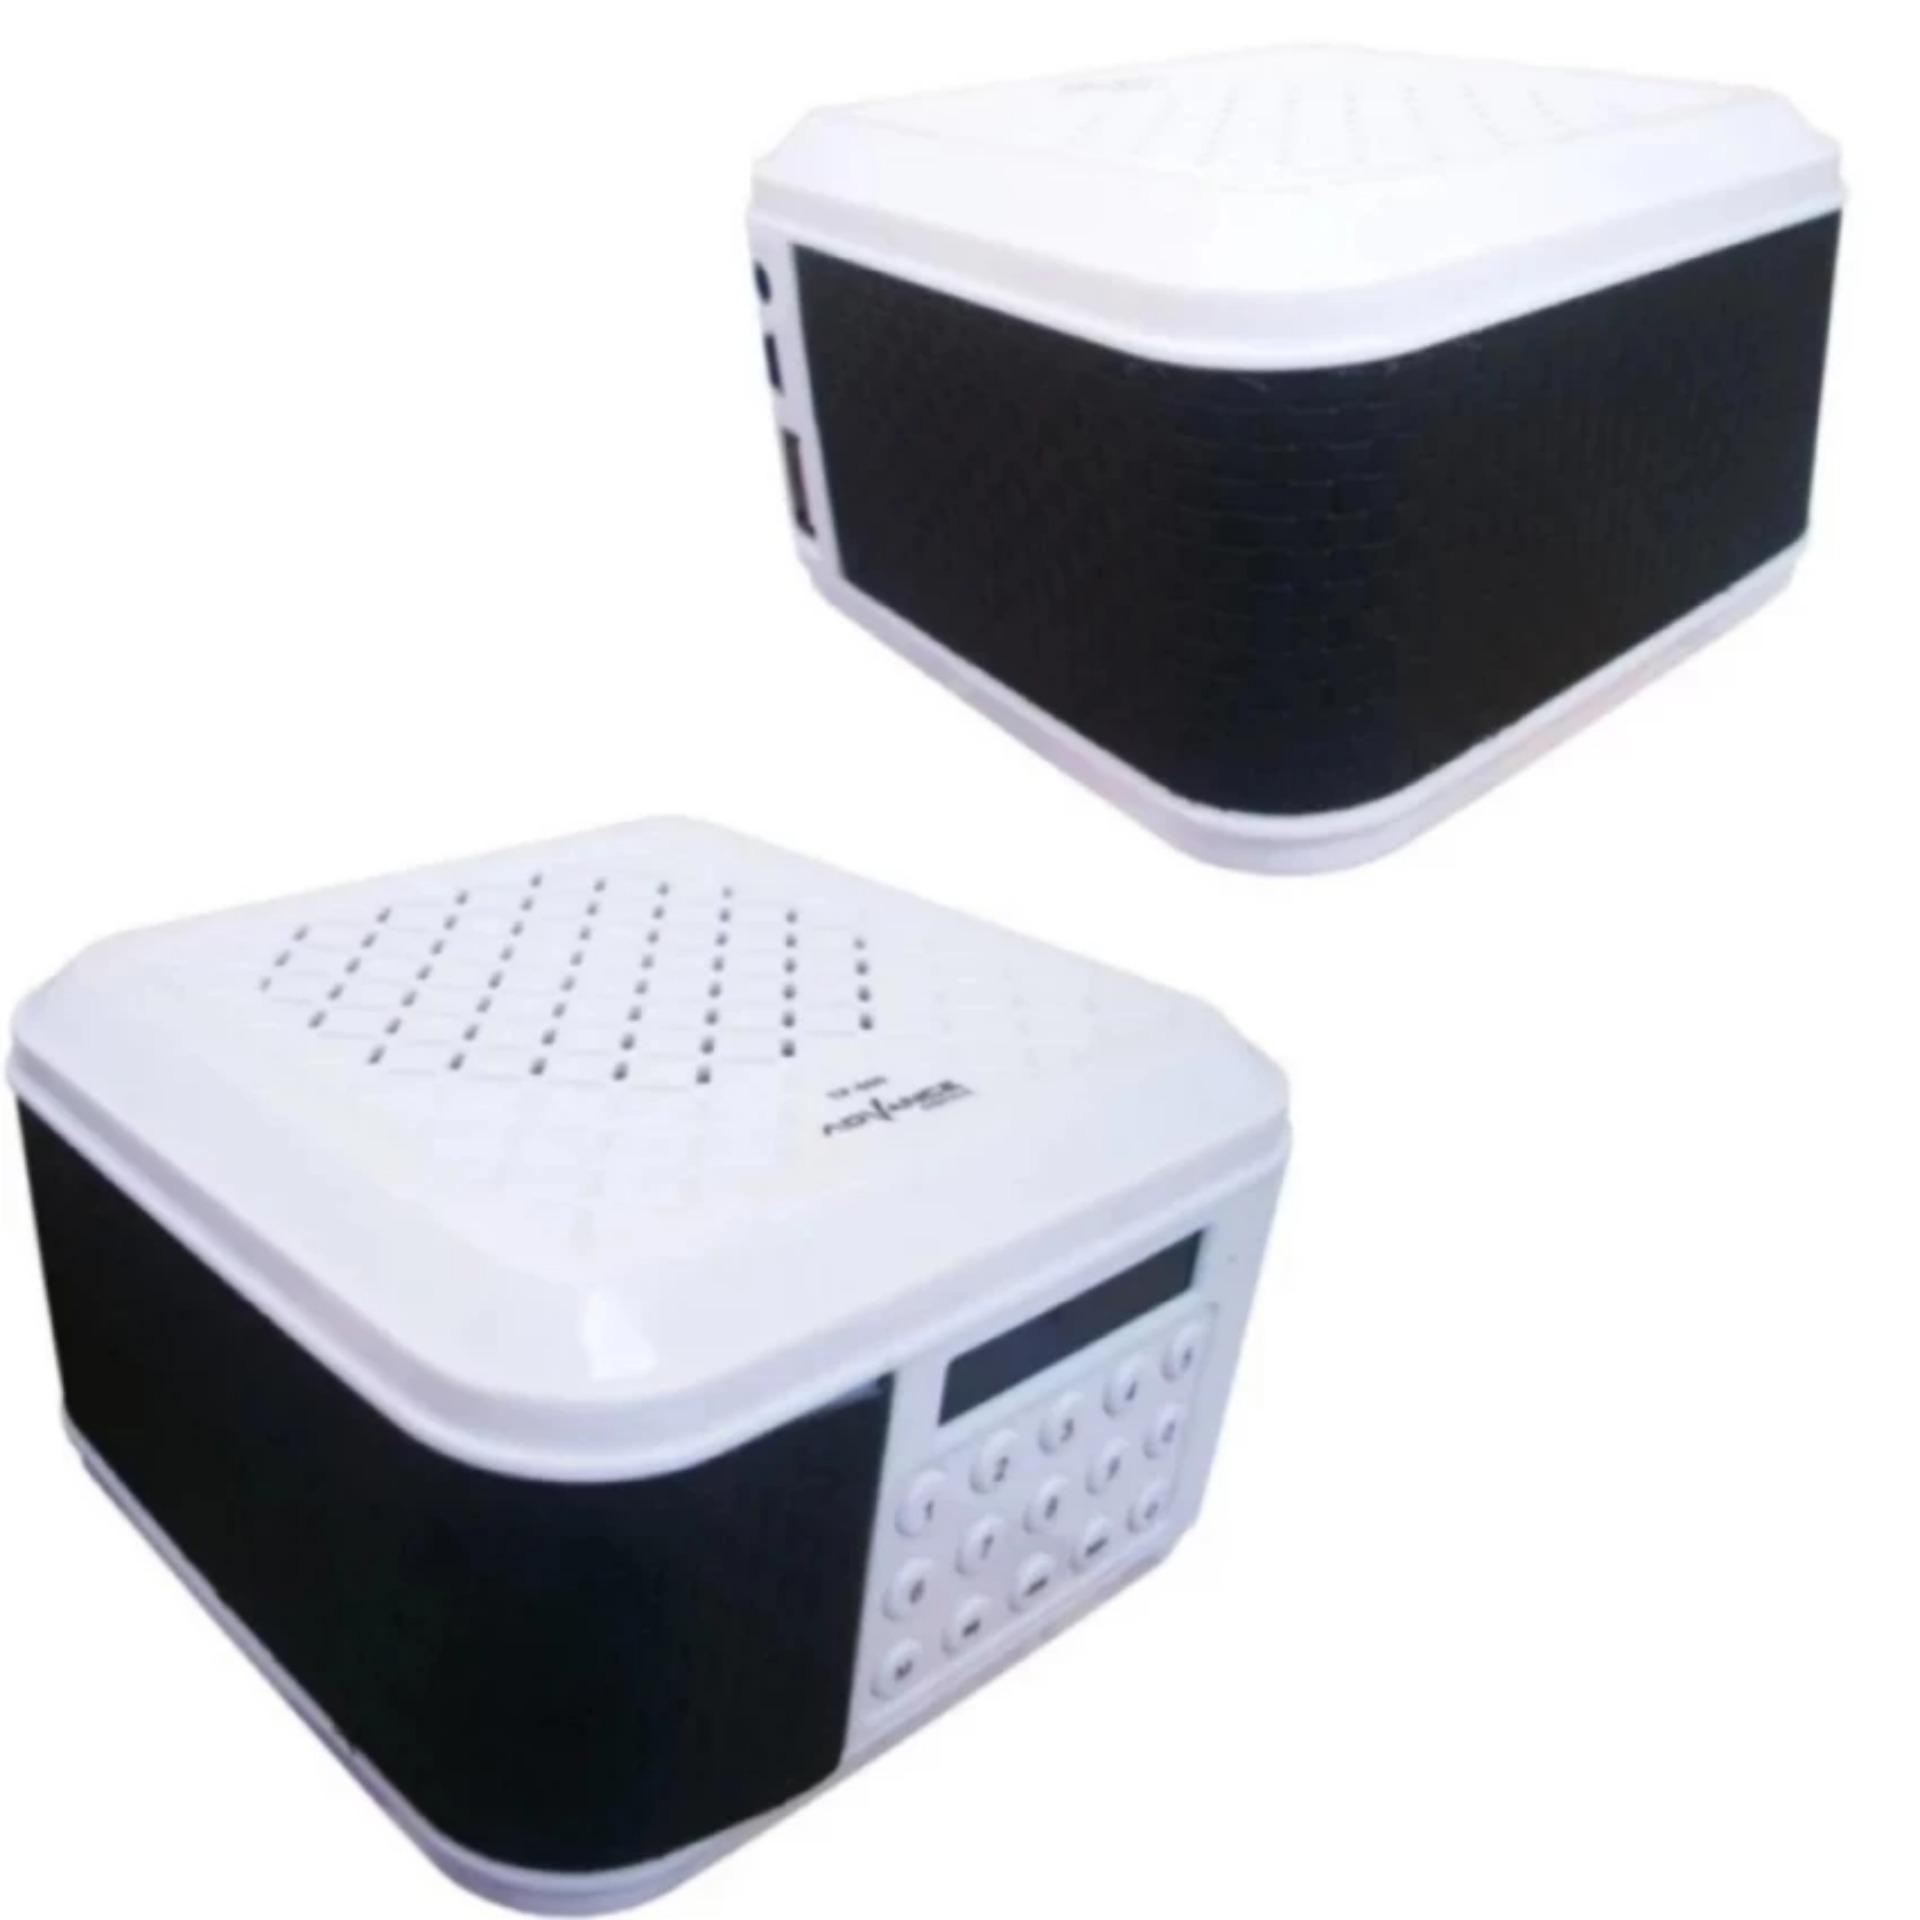 Harga Speaker Portable Xtra Power Sound Advance Tp 600 Original